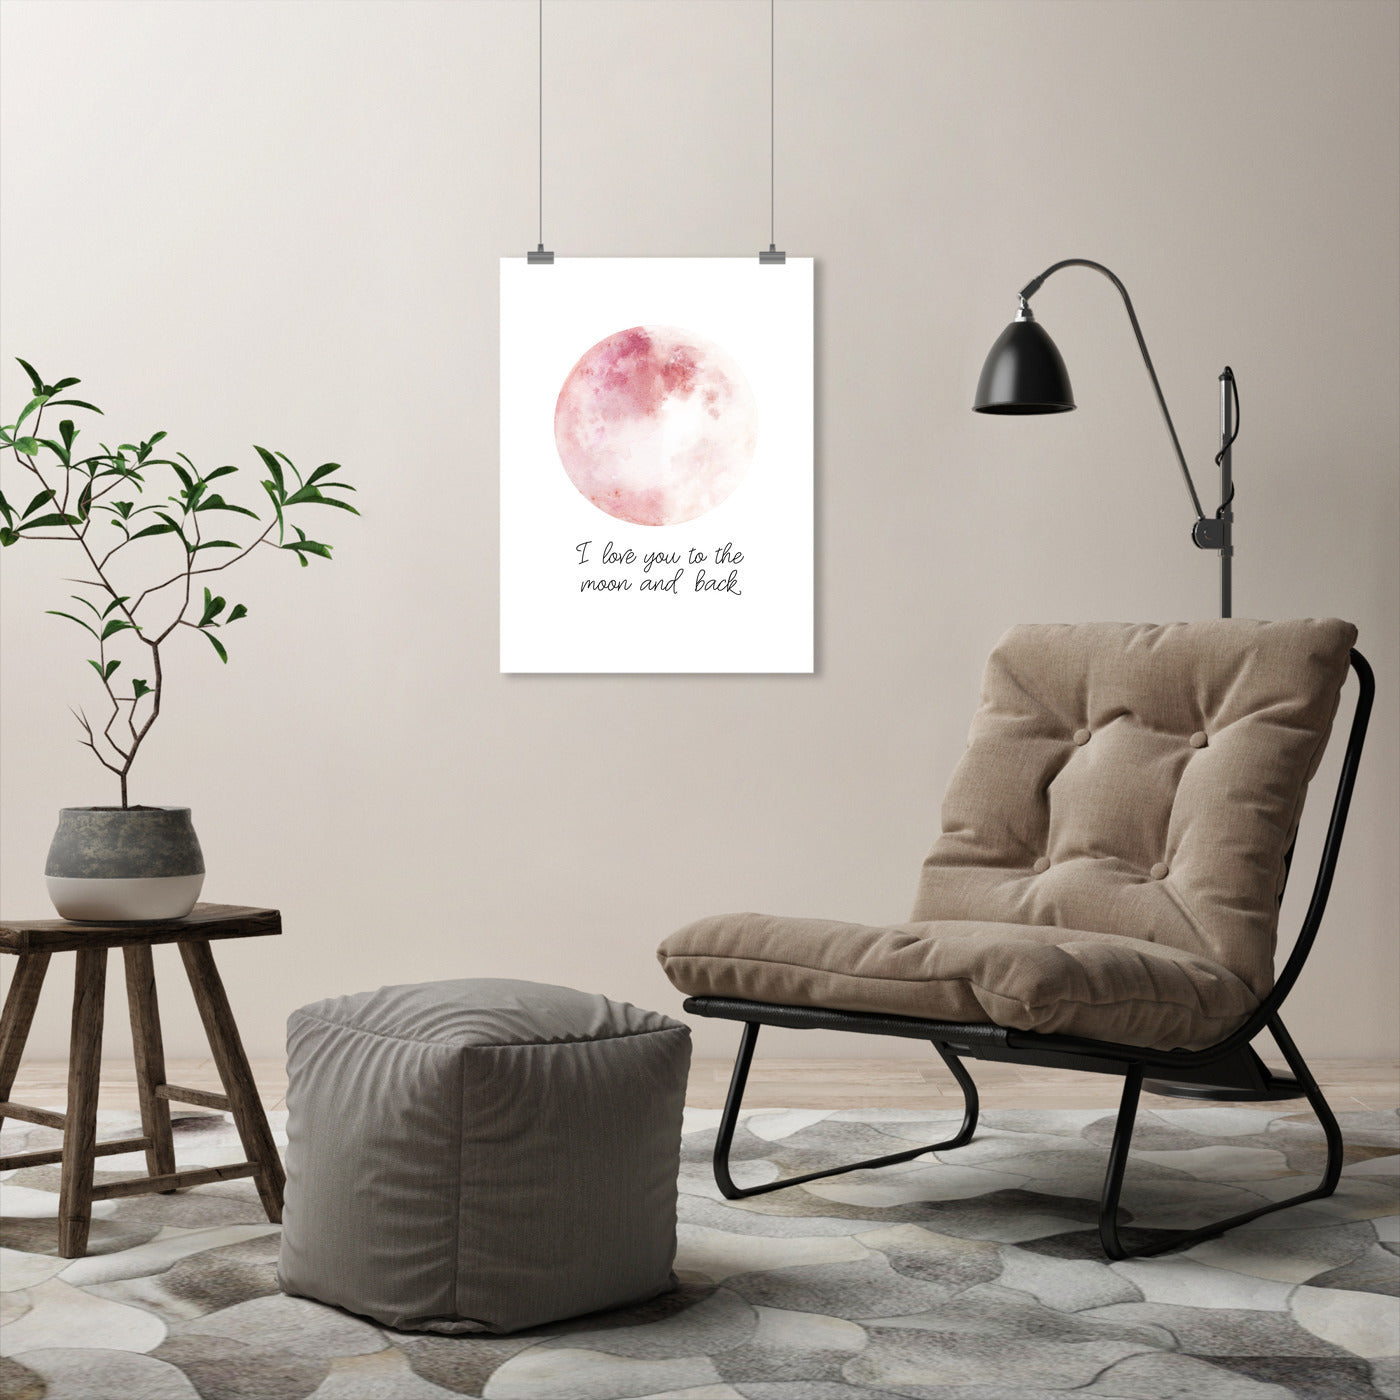 Pink Moon And Back by Wall + Wonder - Art Print - Americanflat